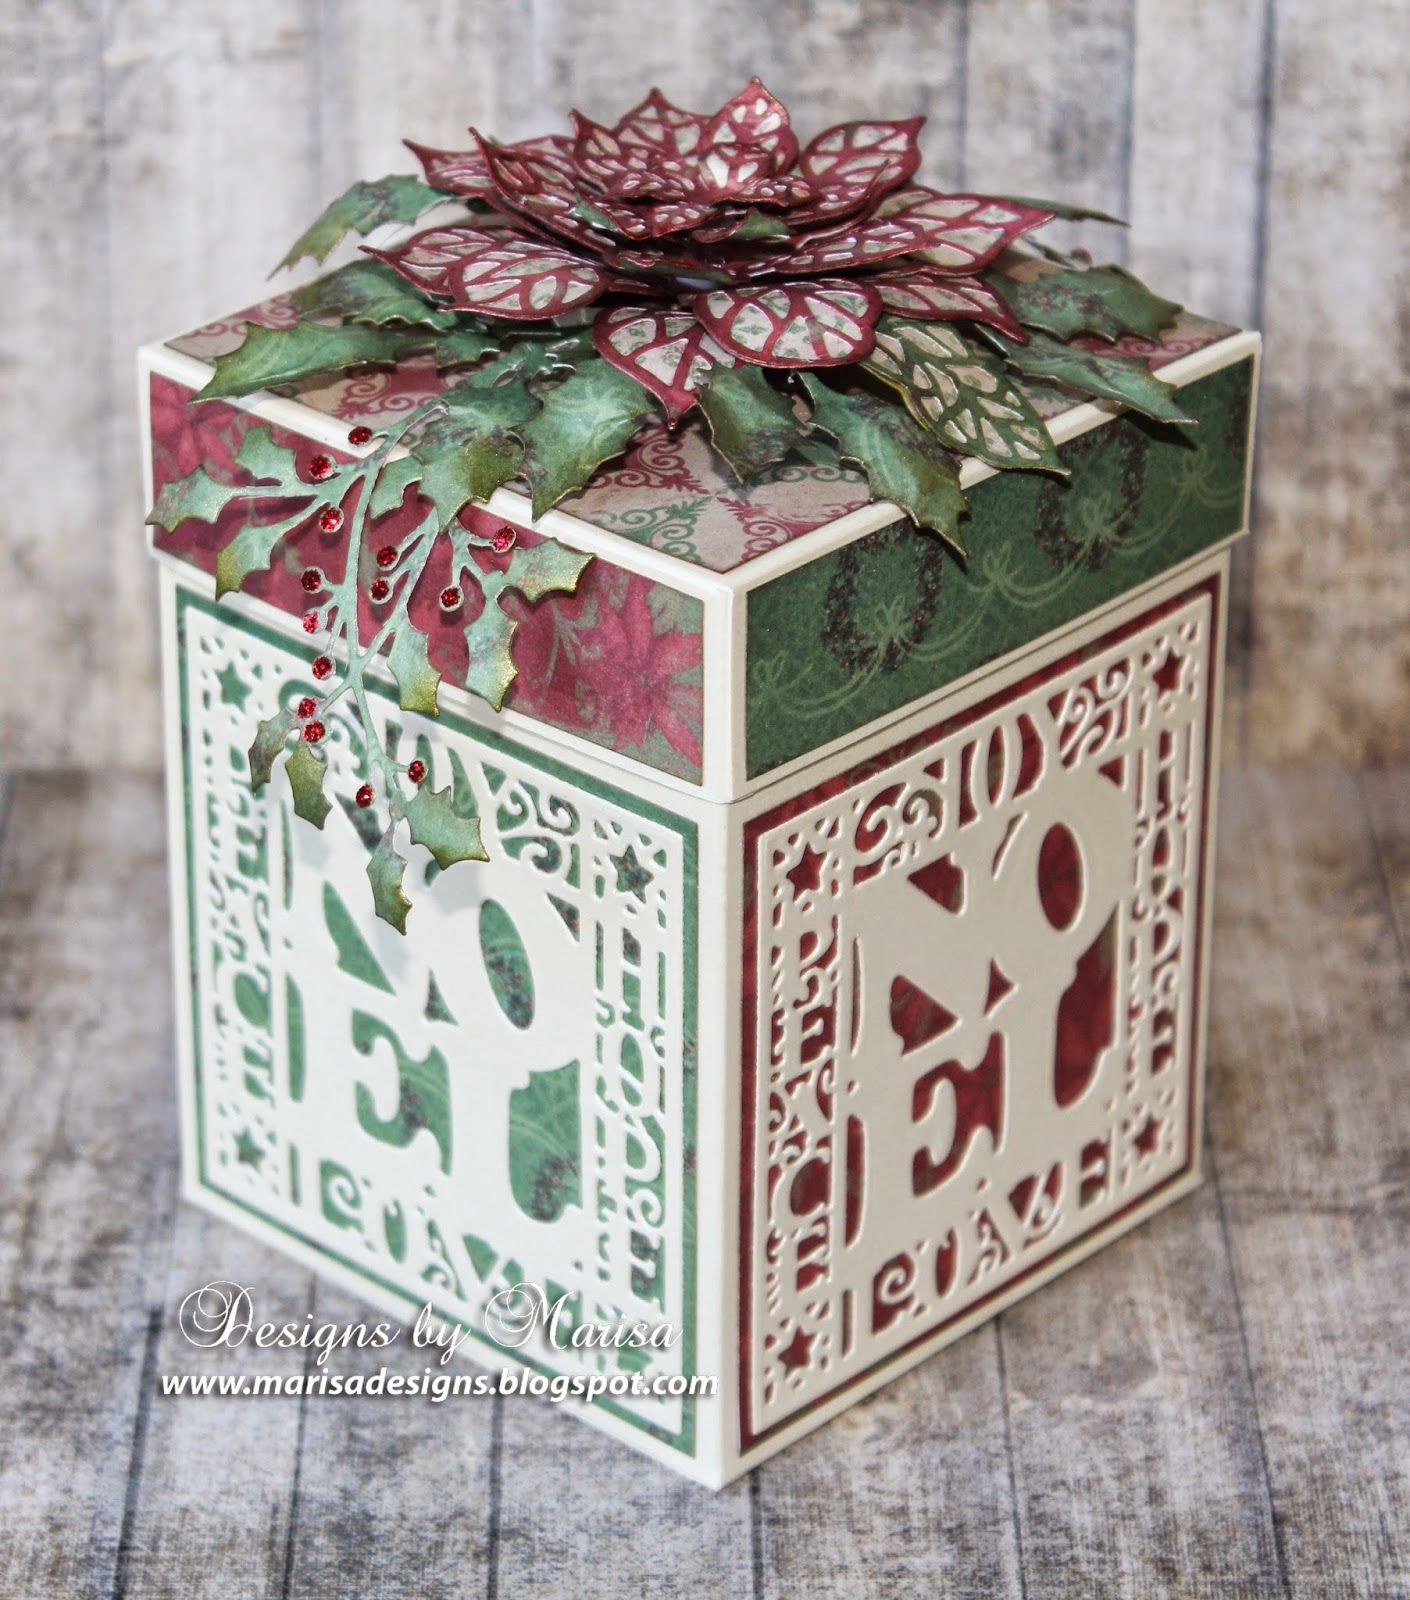 hello friends today i have a christmas gift box to show you created with the beautiful creative